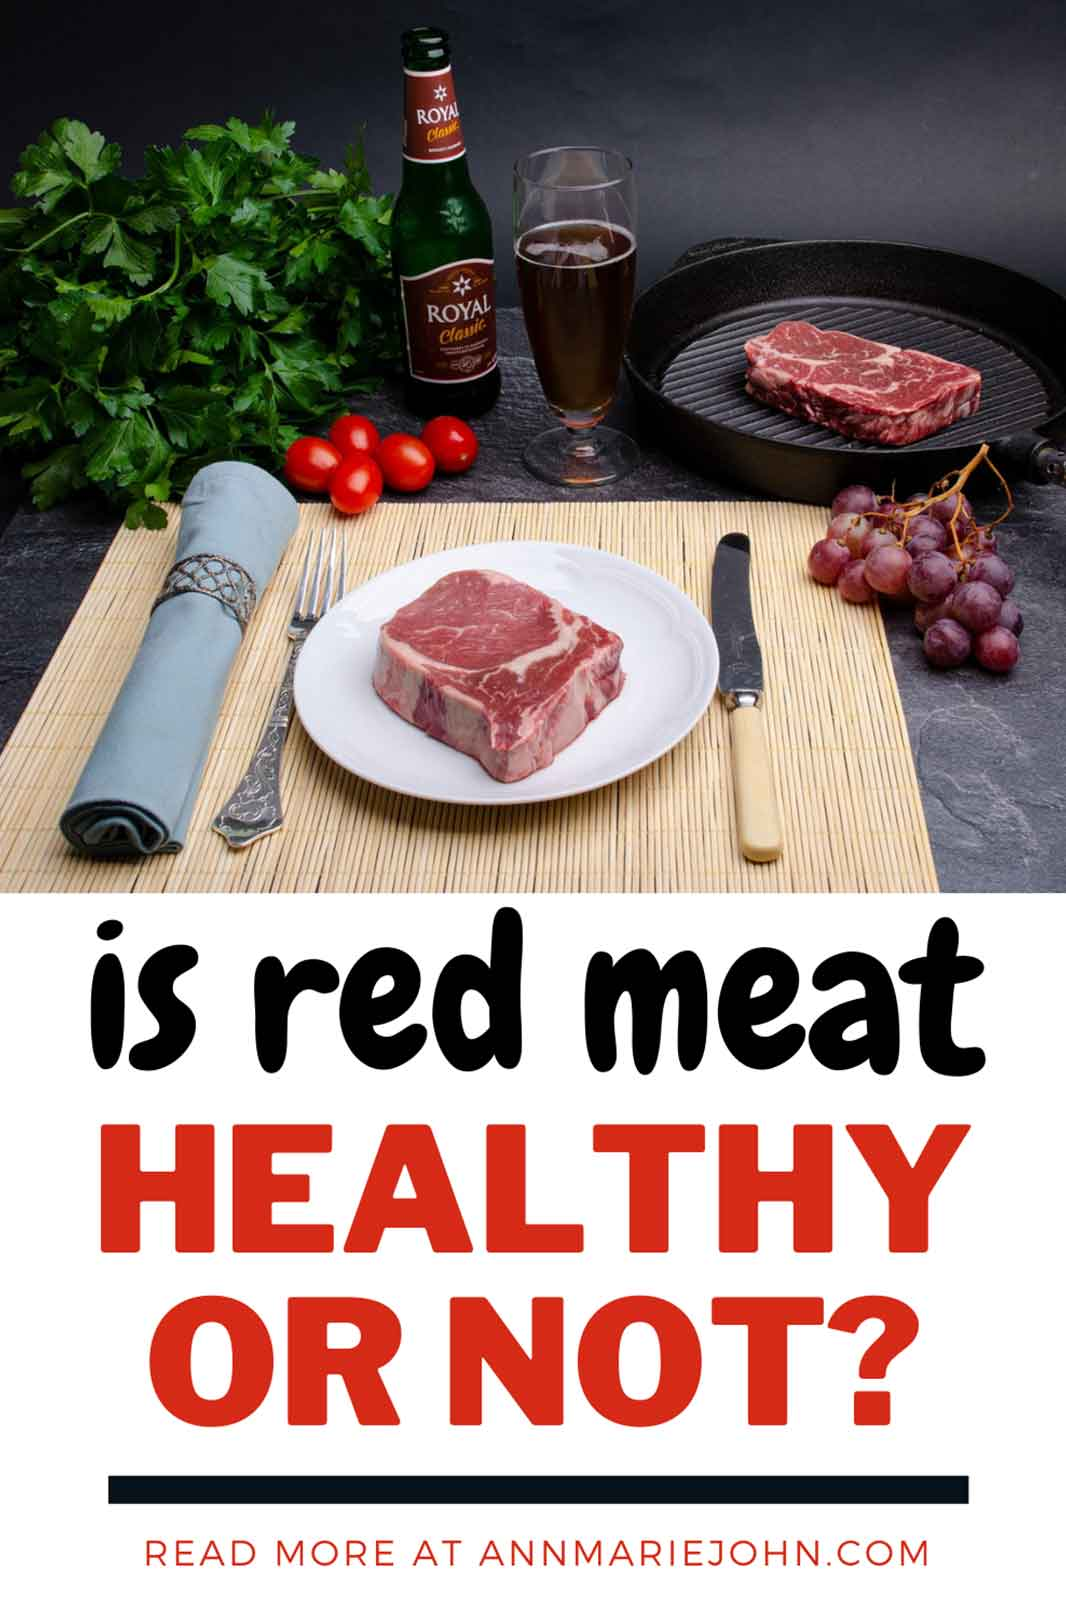 The Final Verdict on Red Meat: Healthy or Not